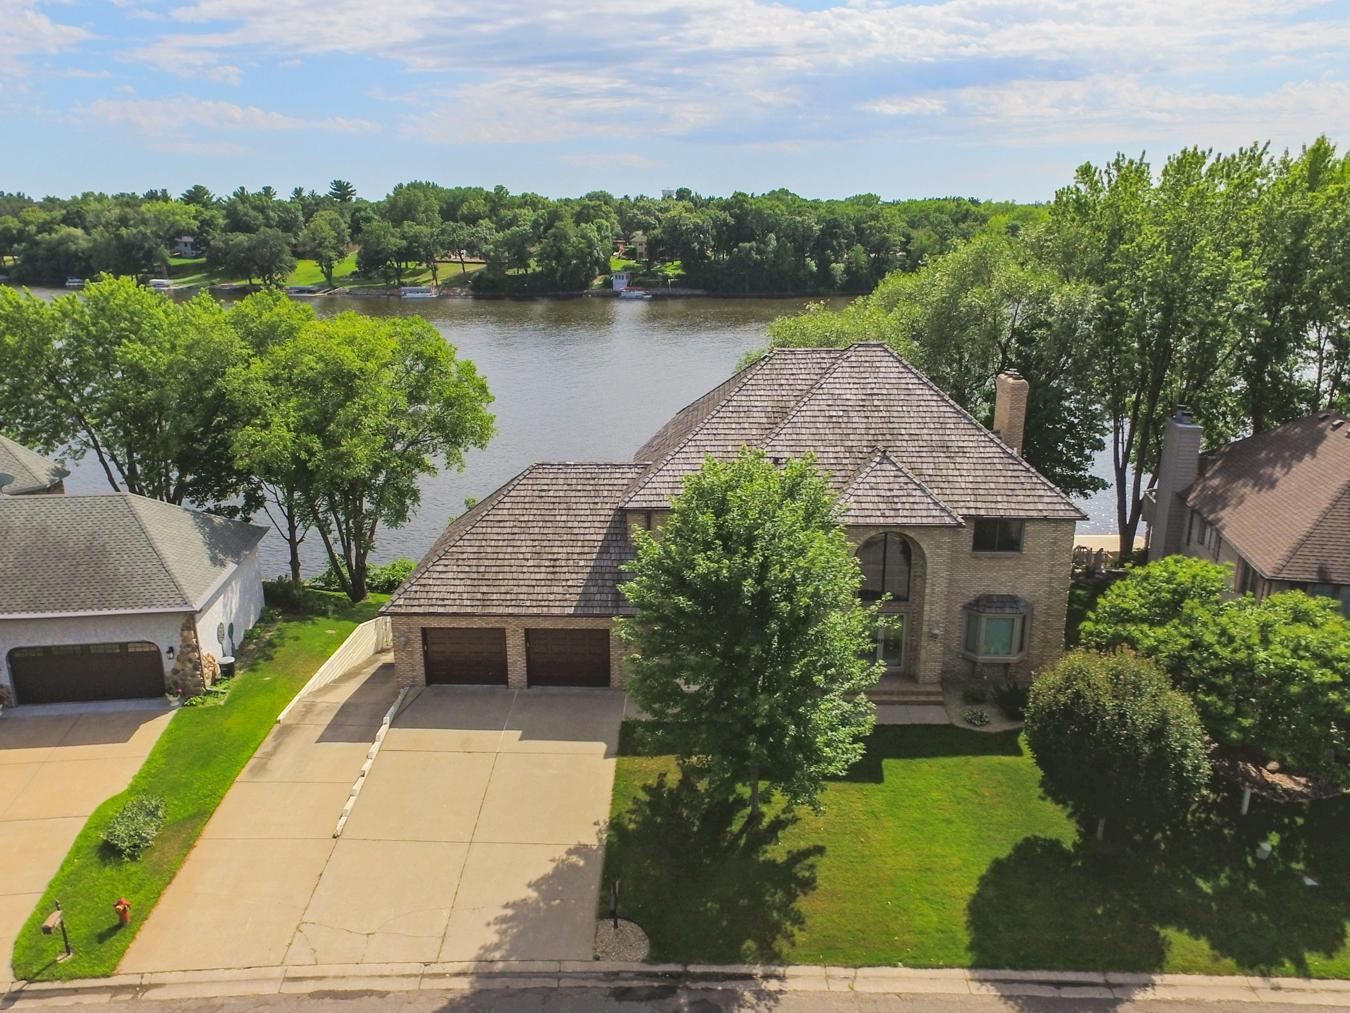 432 River Lane, Anoka, MN 55303 - MLS#: 5613208